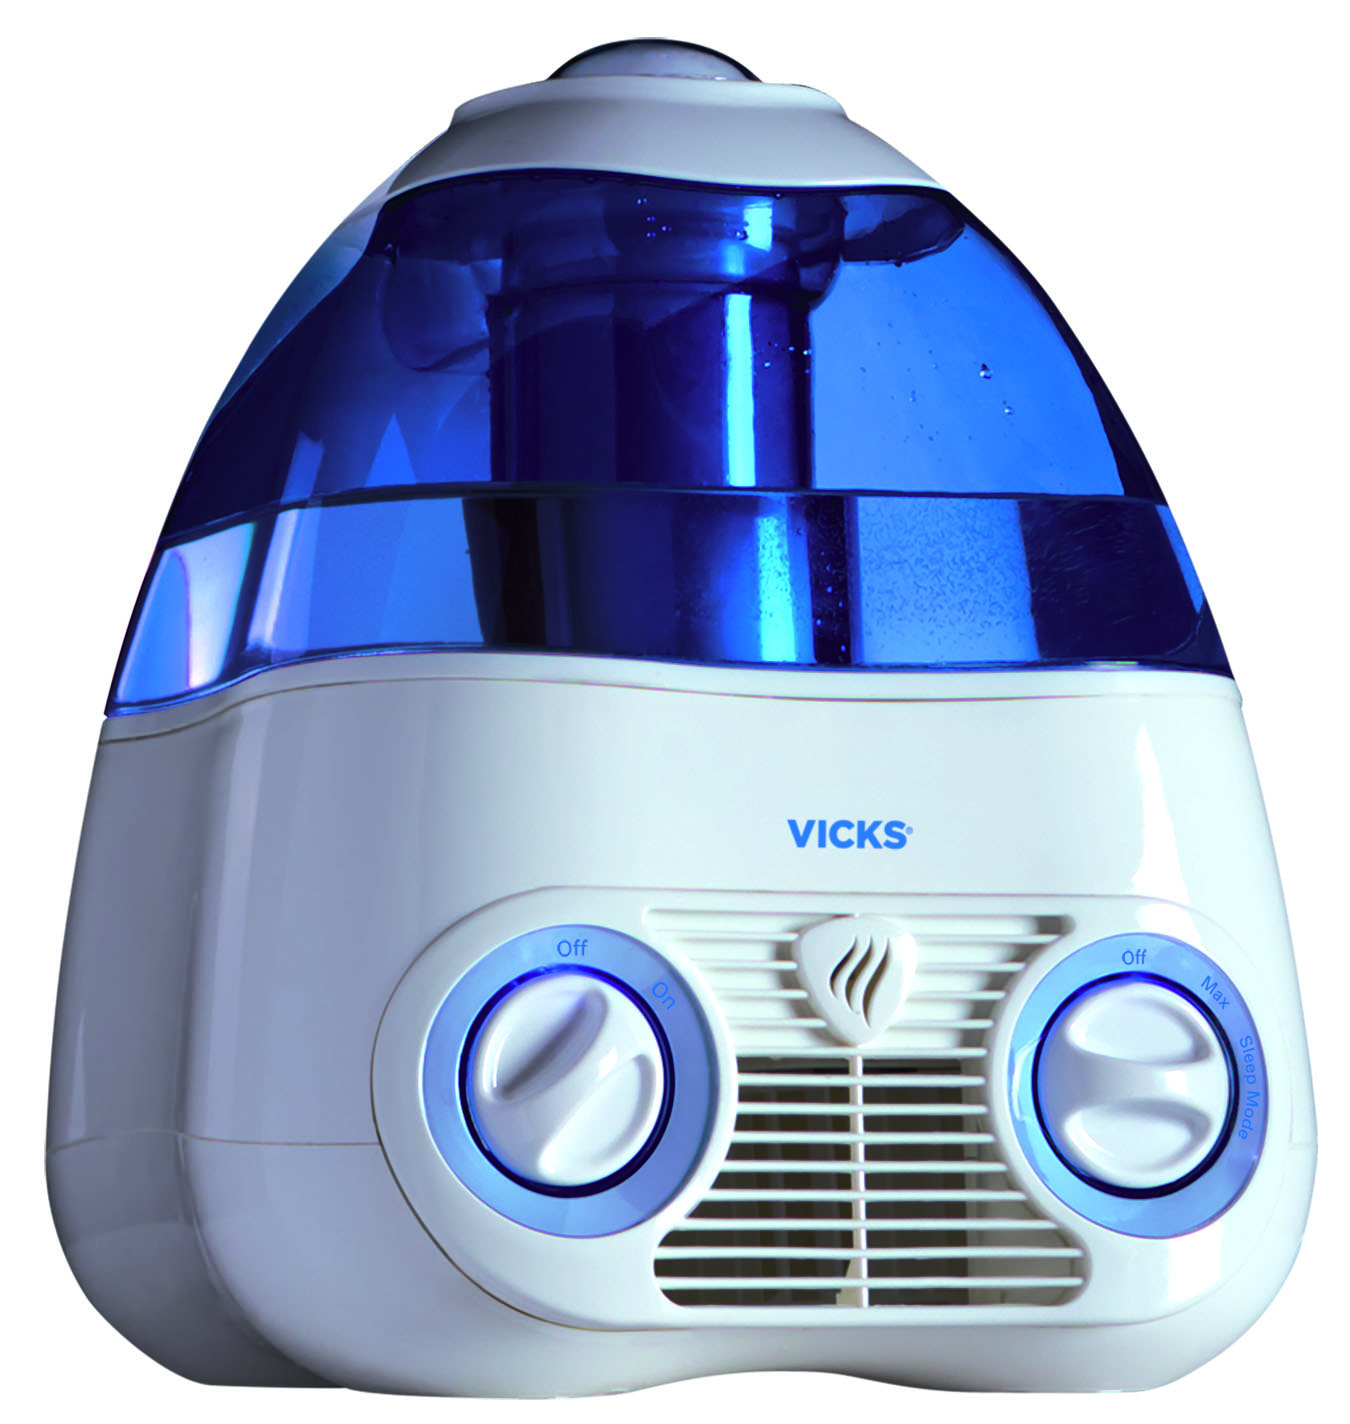 Vicks Starry Night Cool Moisture Humidifier, V3700, Blue